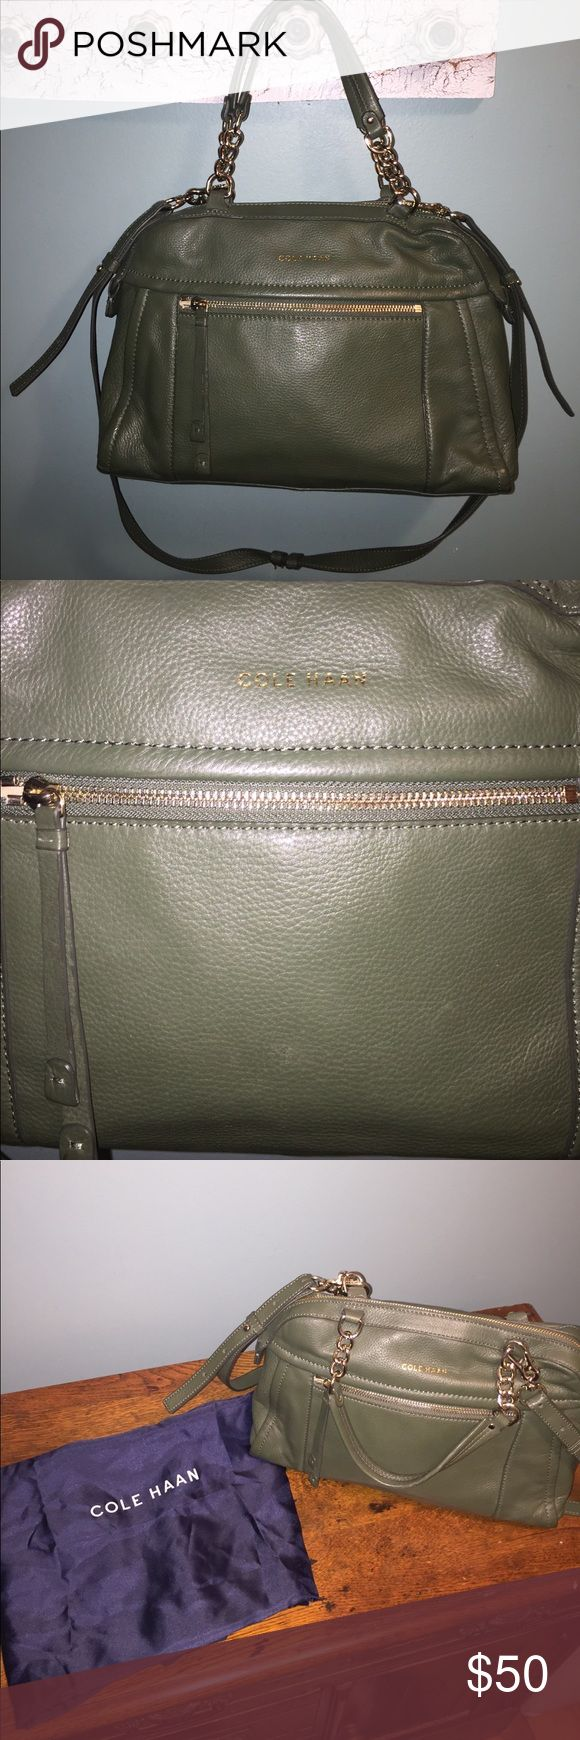 Cole Haan purse Cole Haan satchel with two grab handles and shoulder strap. Front zip pocket. Inside zip pocket. Minor wear on bottom edges as seen in pictures. Small scuff on front as seen in pictures. Only noticeable upon close inspection. Comes with dust bag. Beautiful muted green. I have received a lot of compliments on this bag Cole Haan Bags Satchels